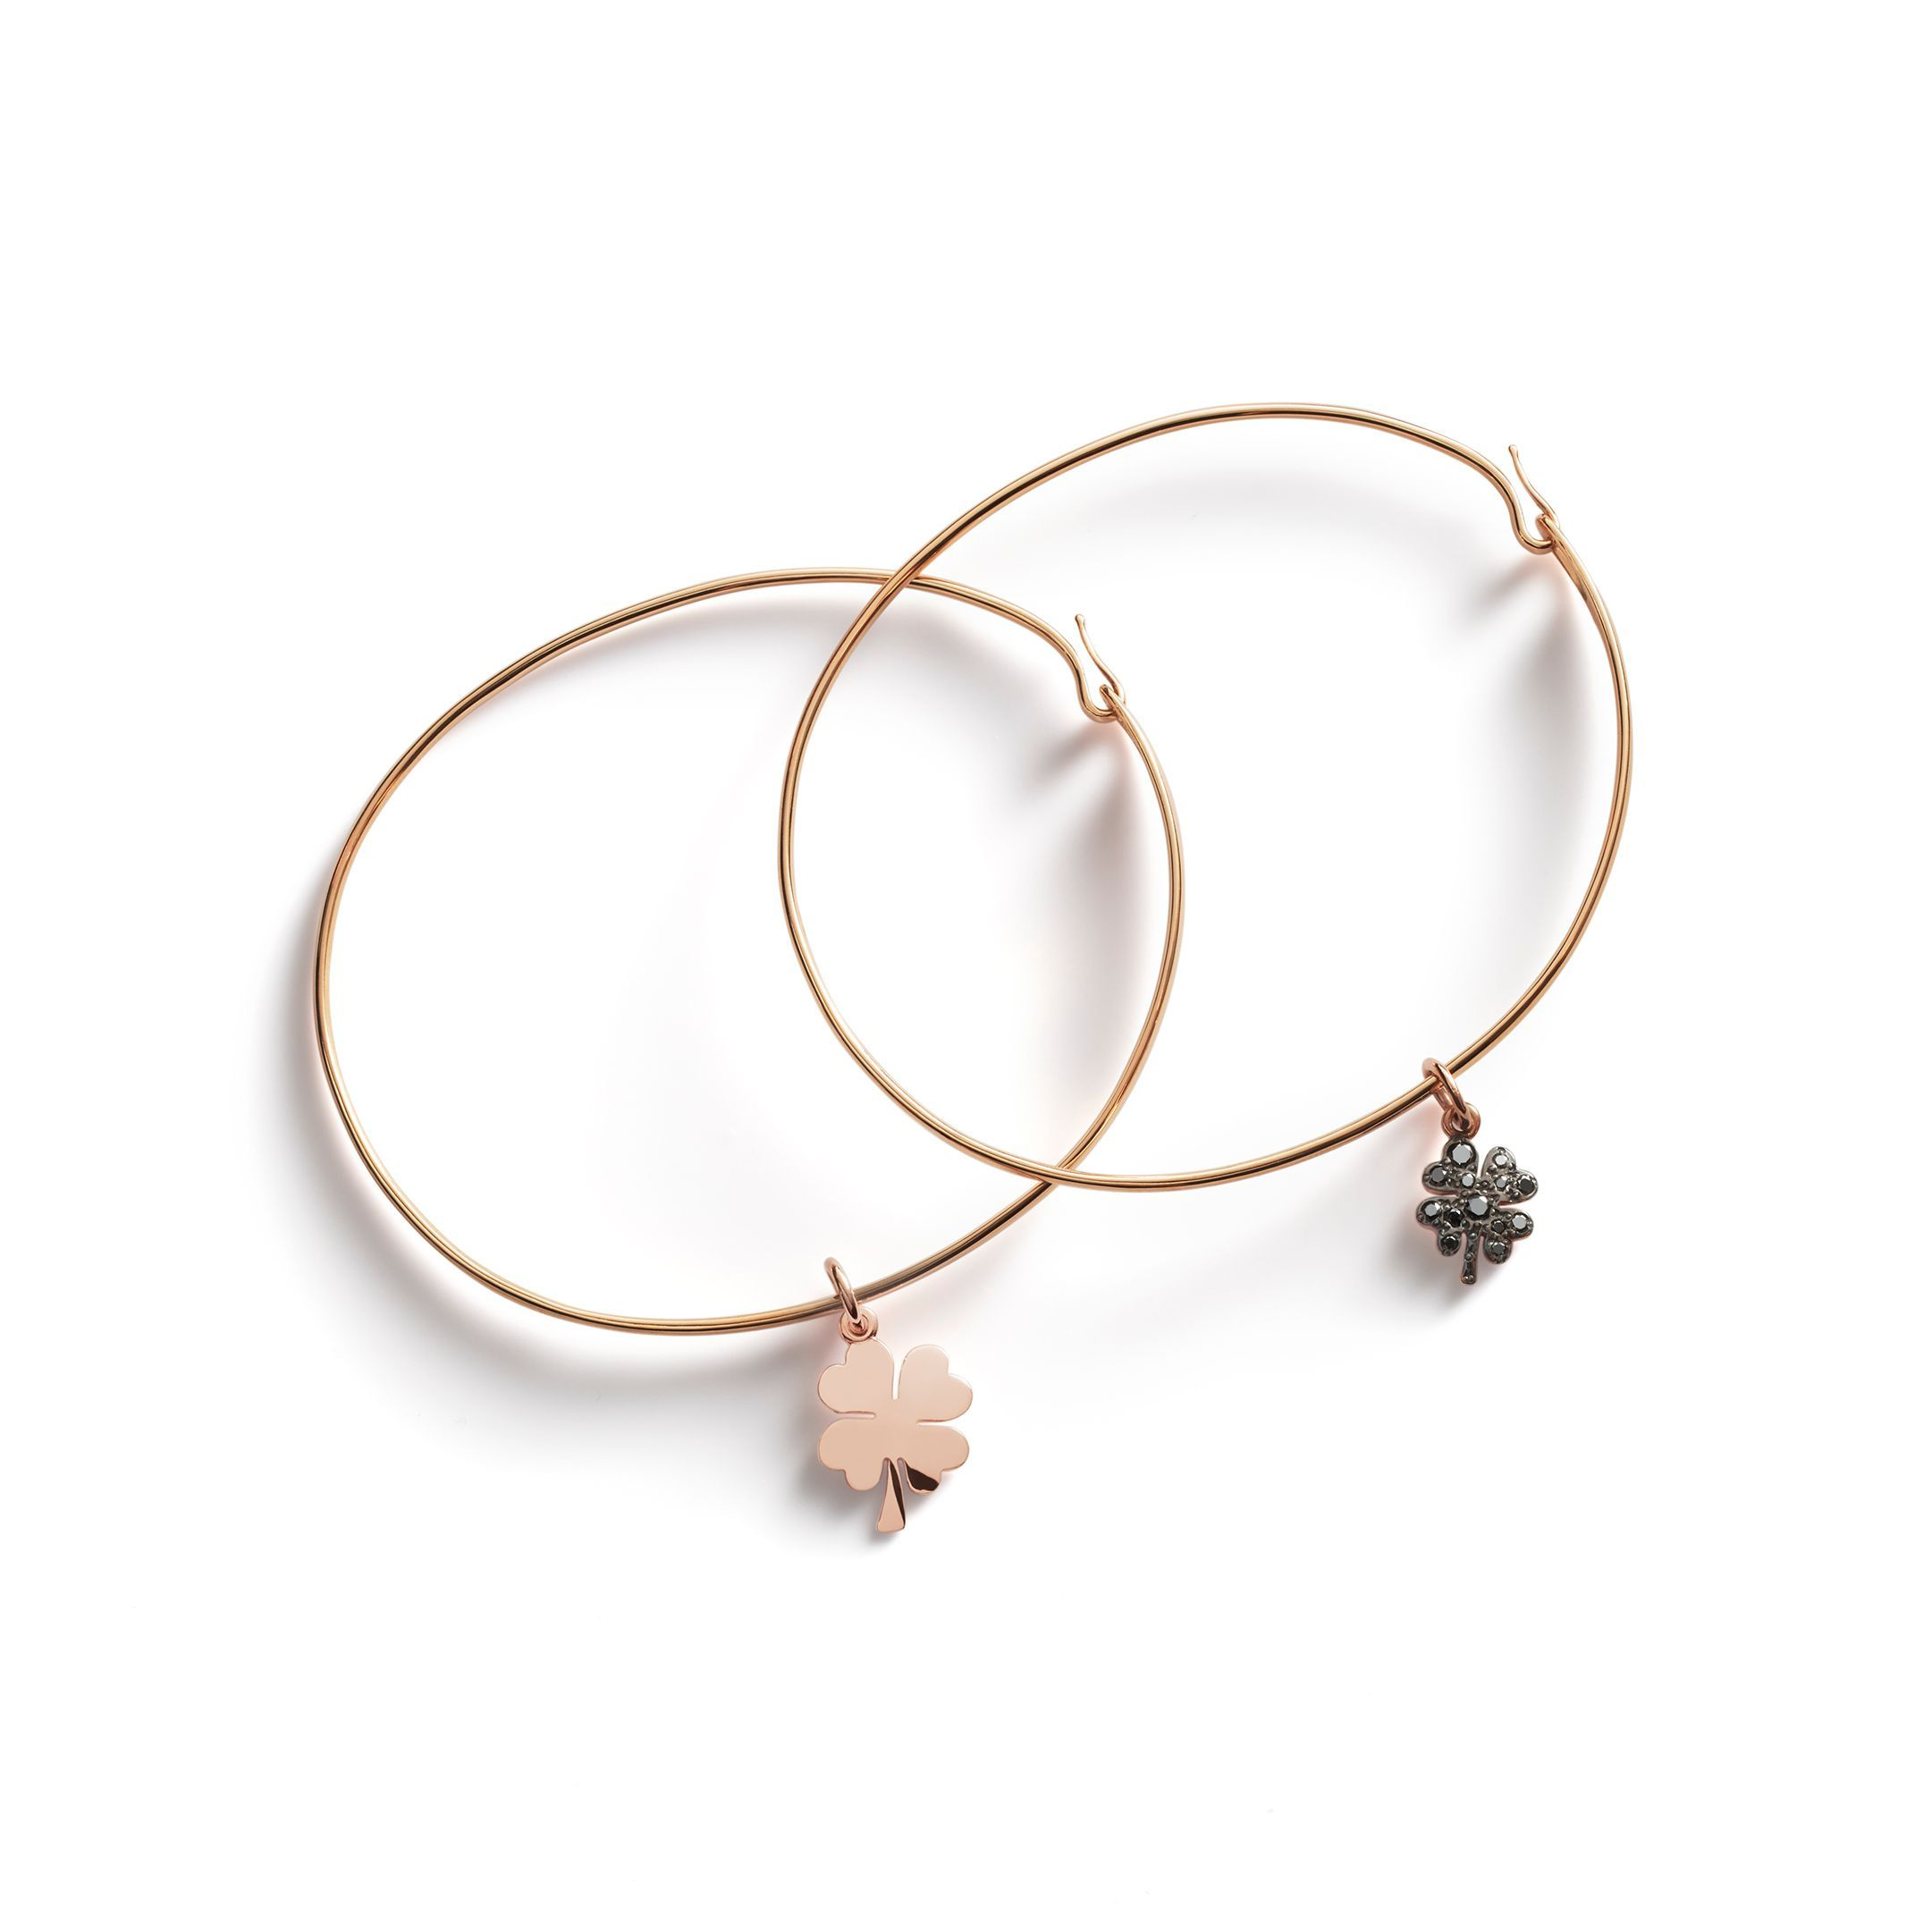 BANGLES WITH FOUR-LEAF CLOVER CHARMS (2)